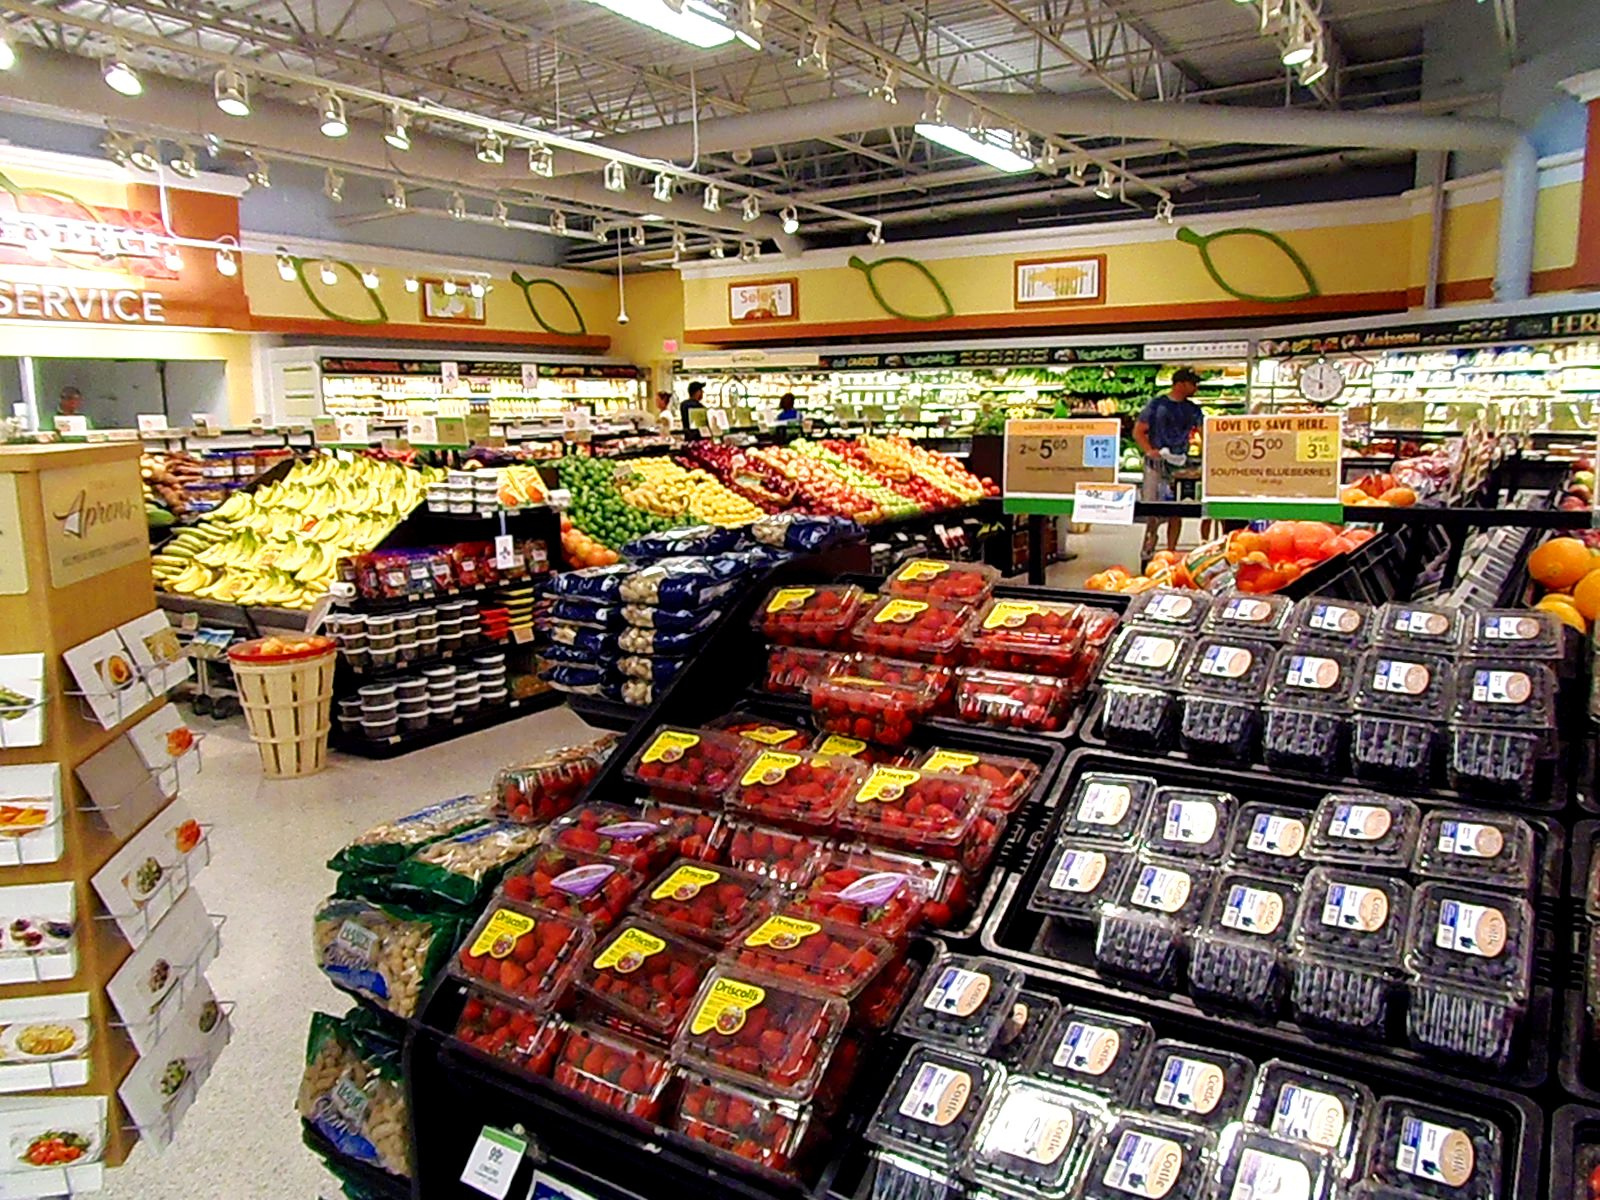 16 Reasons Why Publix Is The Best Grocery Store Ever